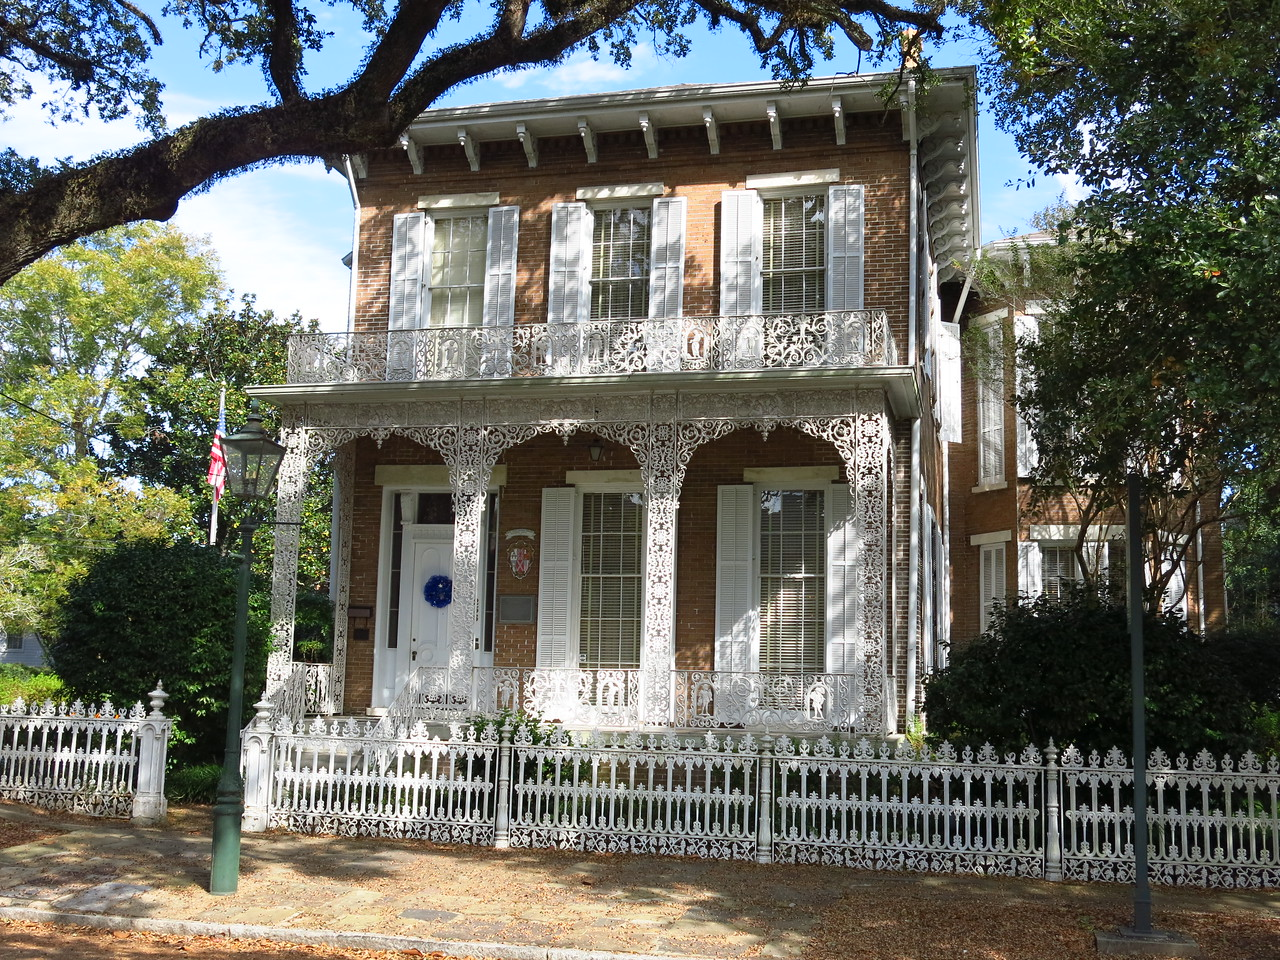 HIstoric home in Mobile